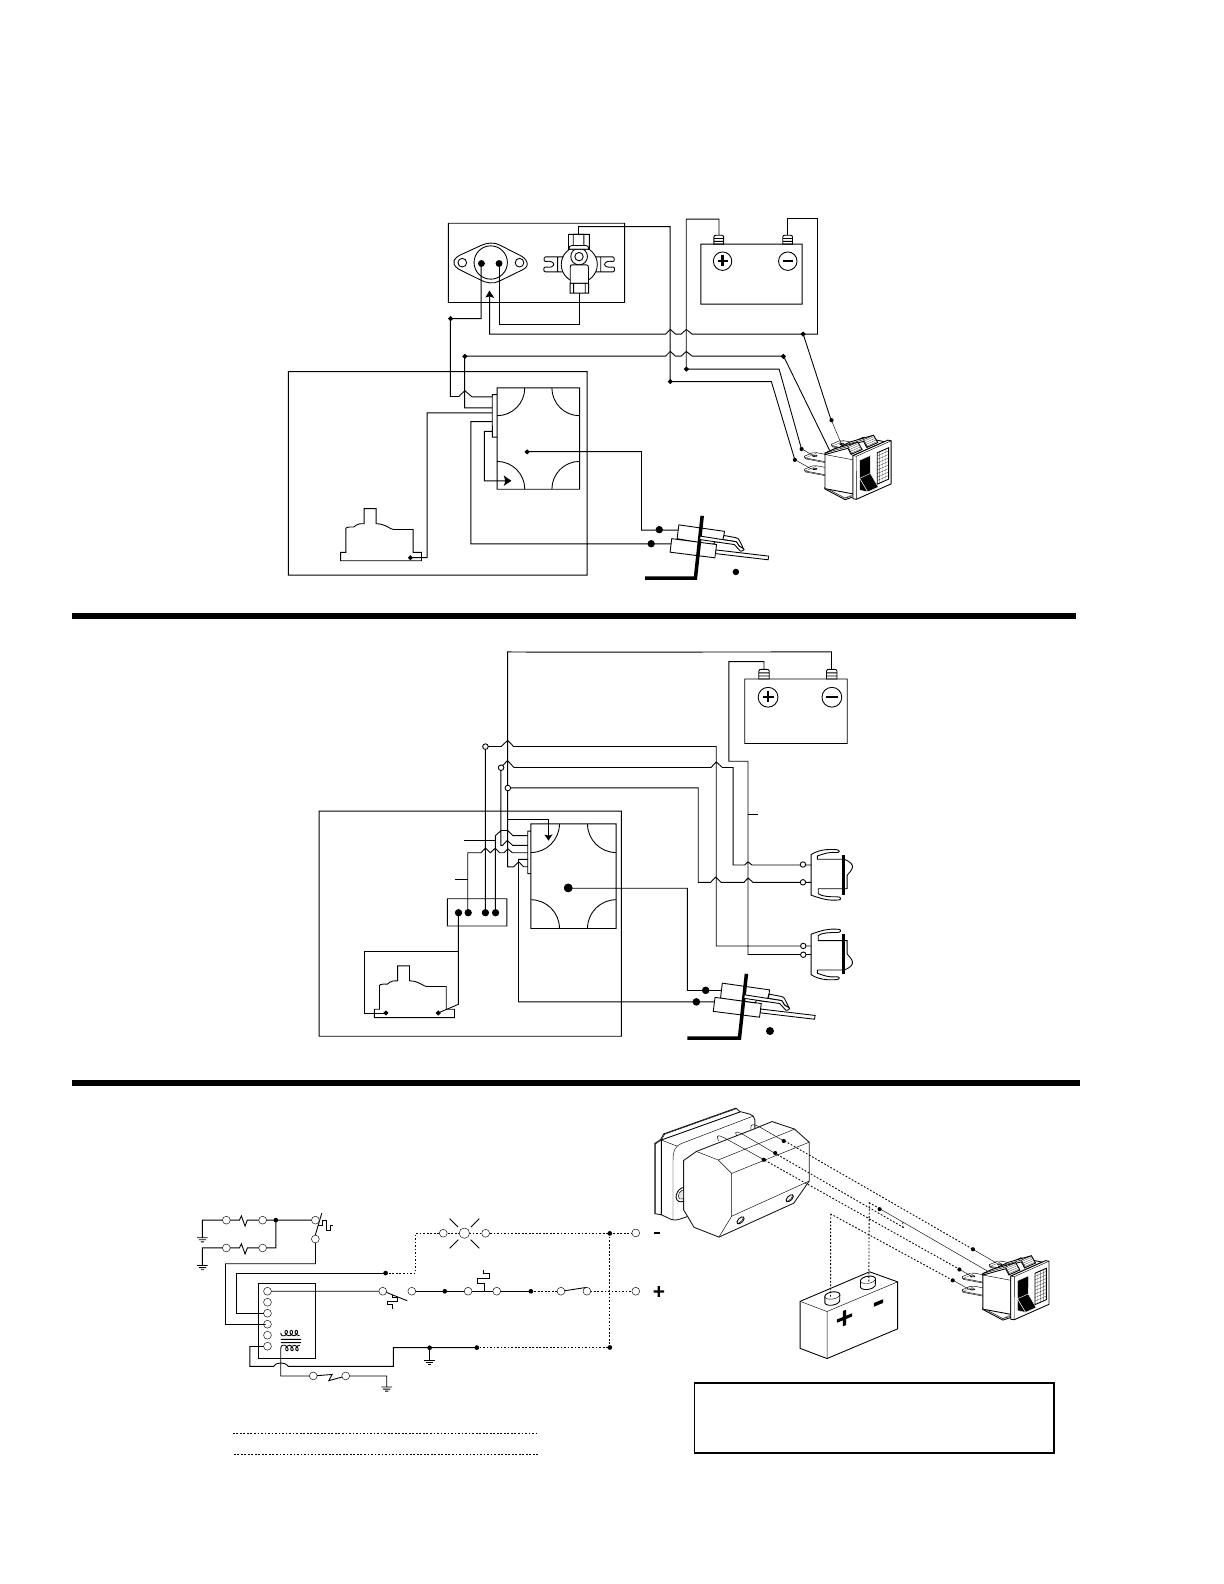 3f2cace3 81e7 4fb0 8be7 b51f580cf60a bg18 page 24 of atwood mobile products water heater 94605 user guide Atwood Water Heater Service Manual at pacquiaovsvargaslive.co